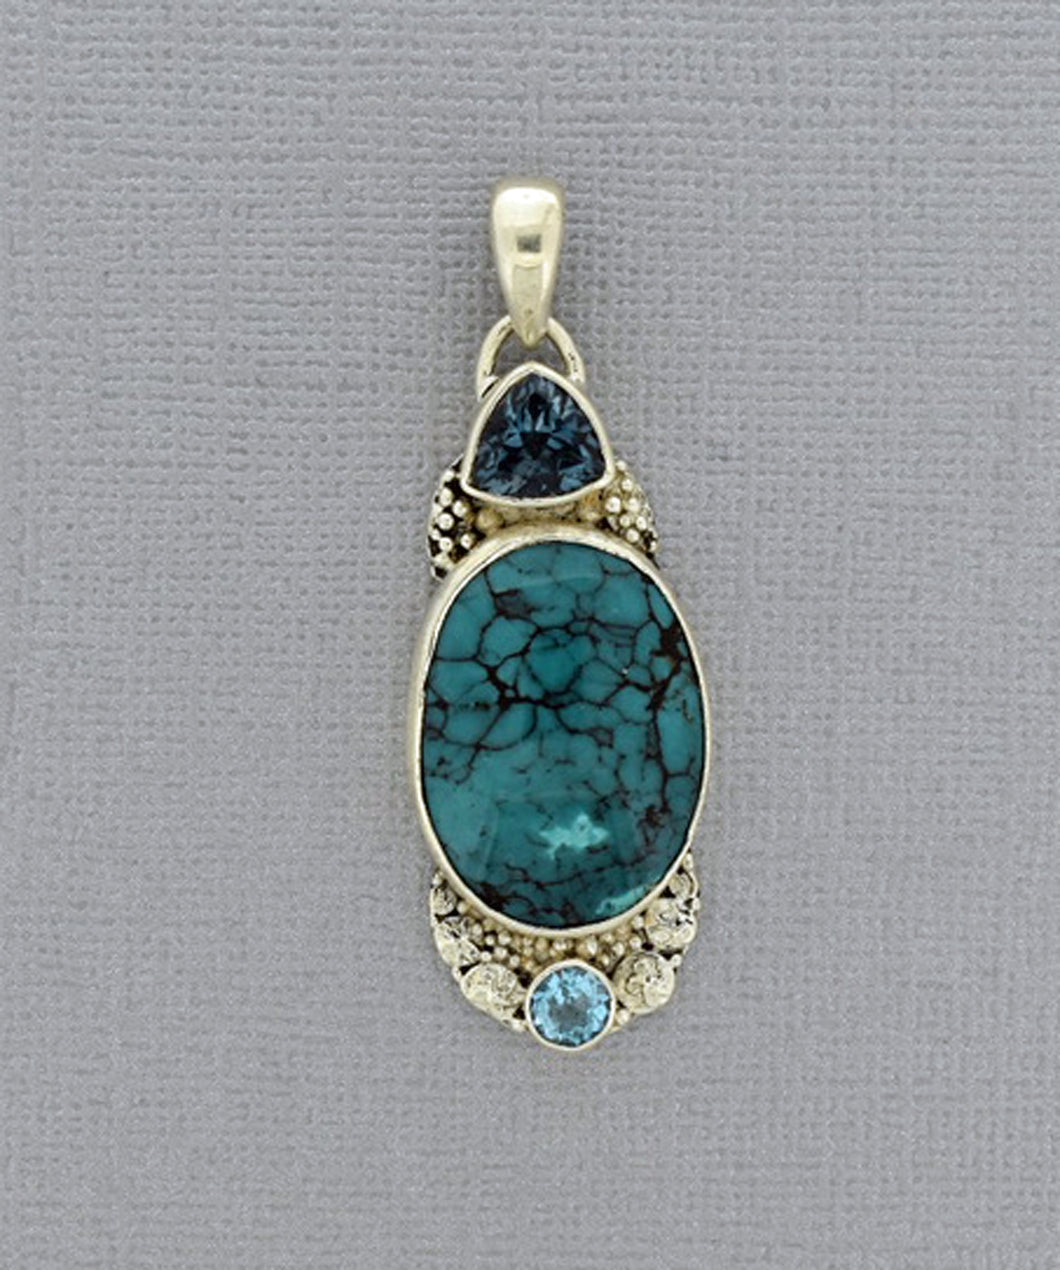 Turquoise Pendant in Sterling Silver with London Blue Topaz